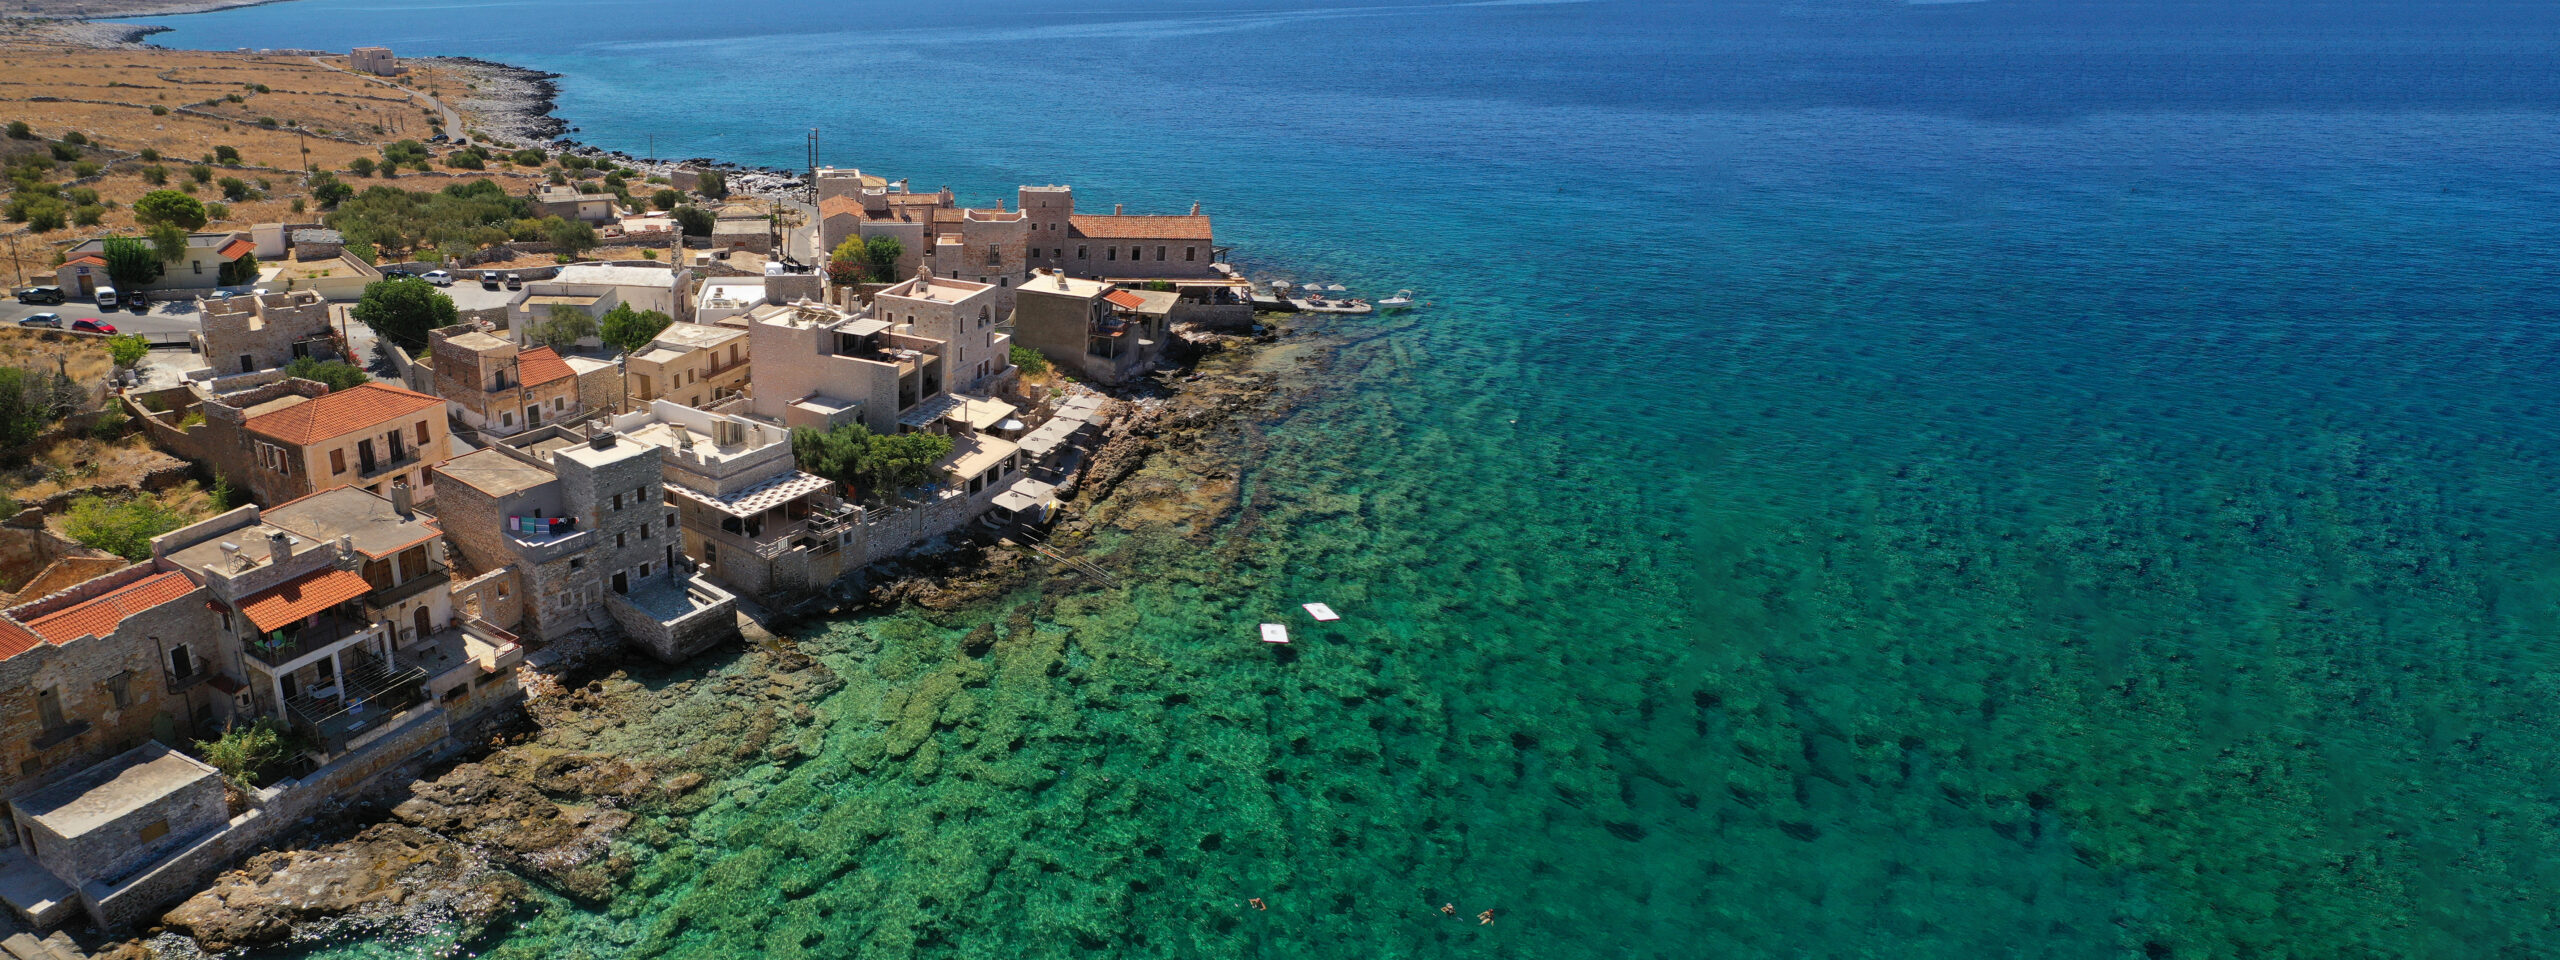 Gerolimenas: The graphical port with the turquoise waters in Mani